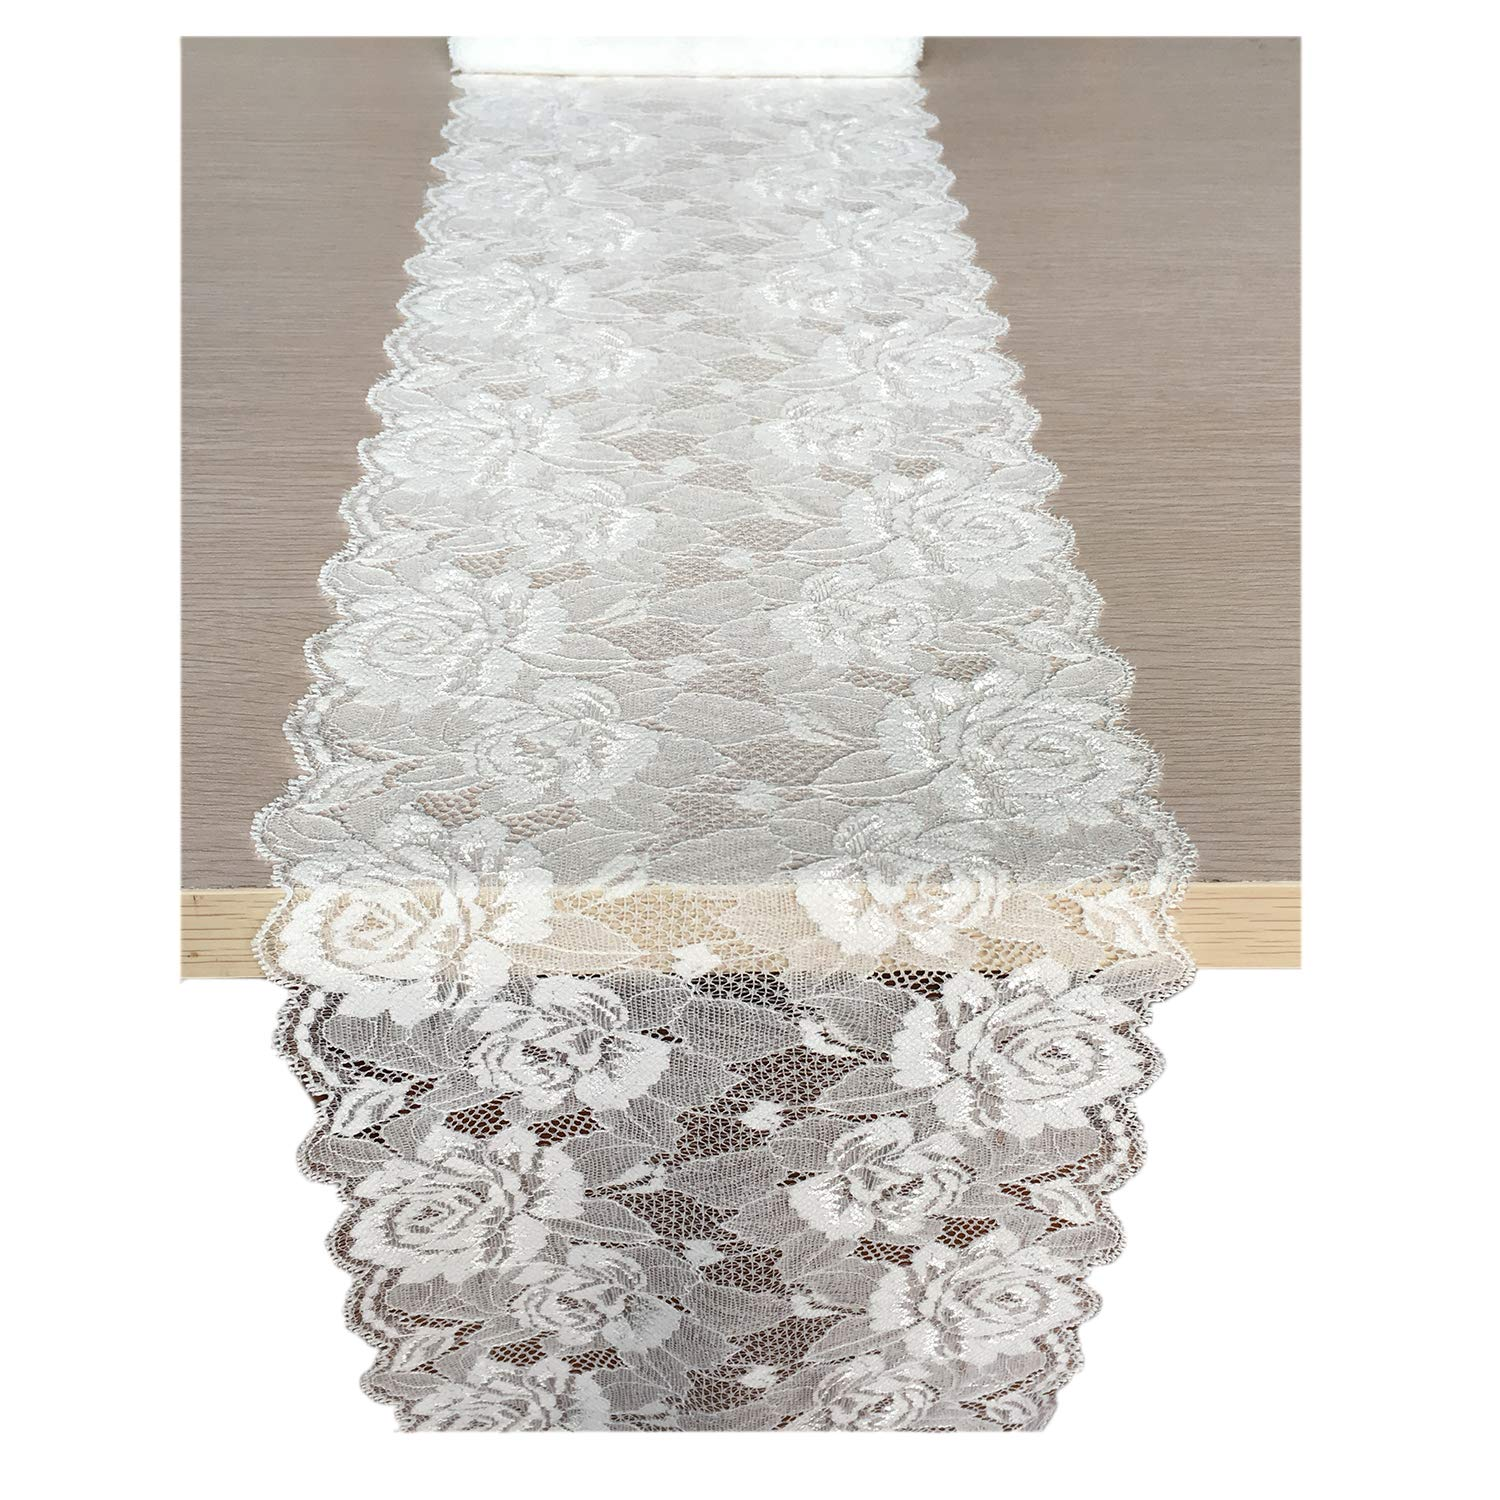 Lacer EALM 7.5 X 180 inches White Lace Table Runner/Overlay Lace Tablecloth Gorgeous Spring Summer Decoration Wedding Party Decoration Baby & Bridal Shower Decor (White 5927)